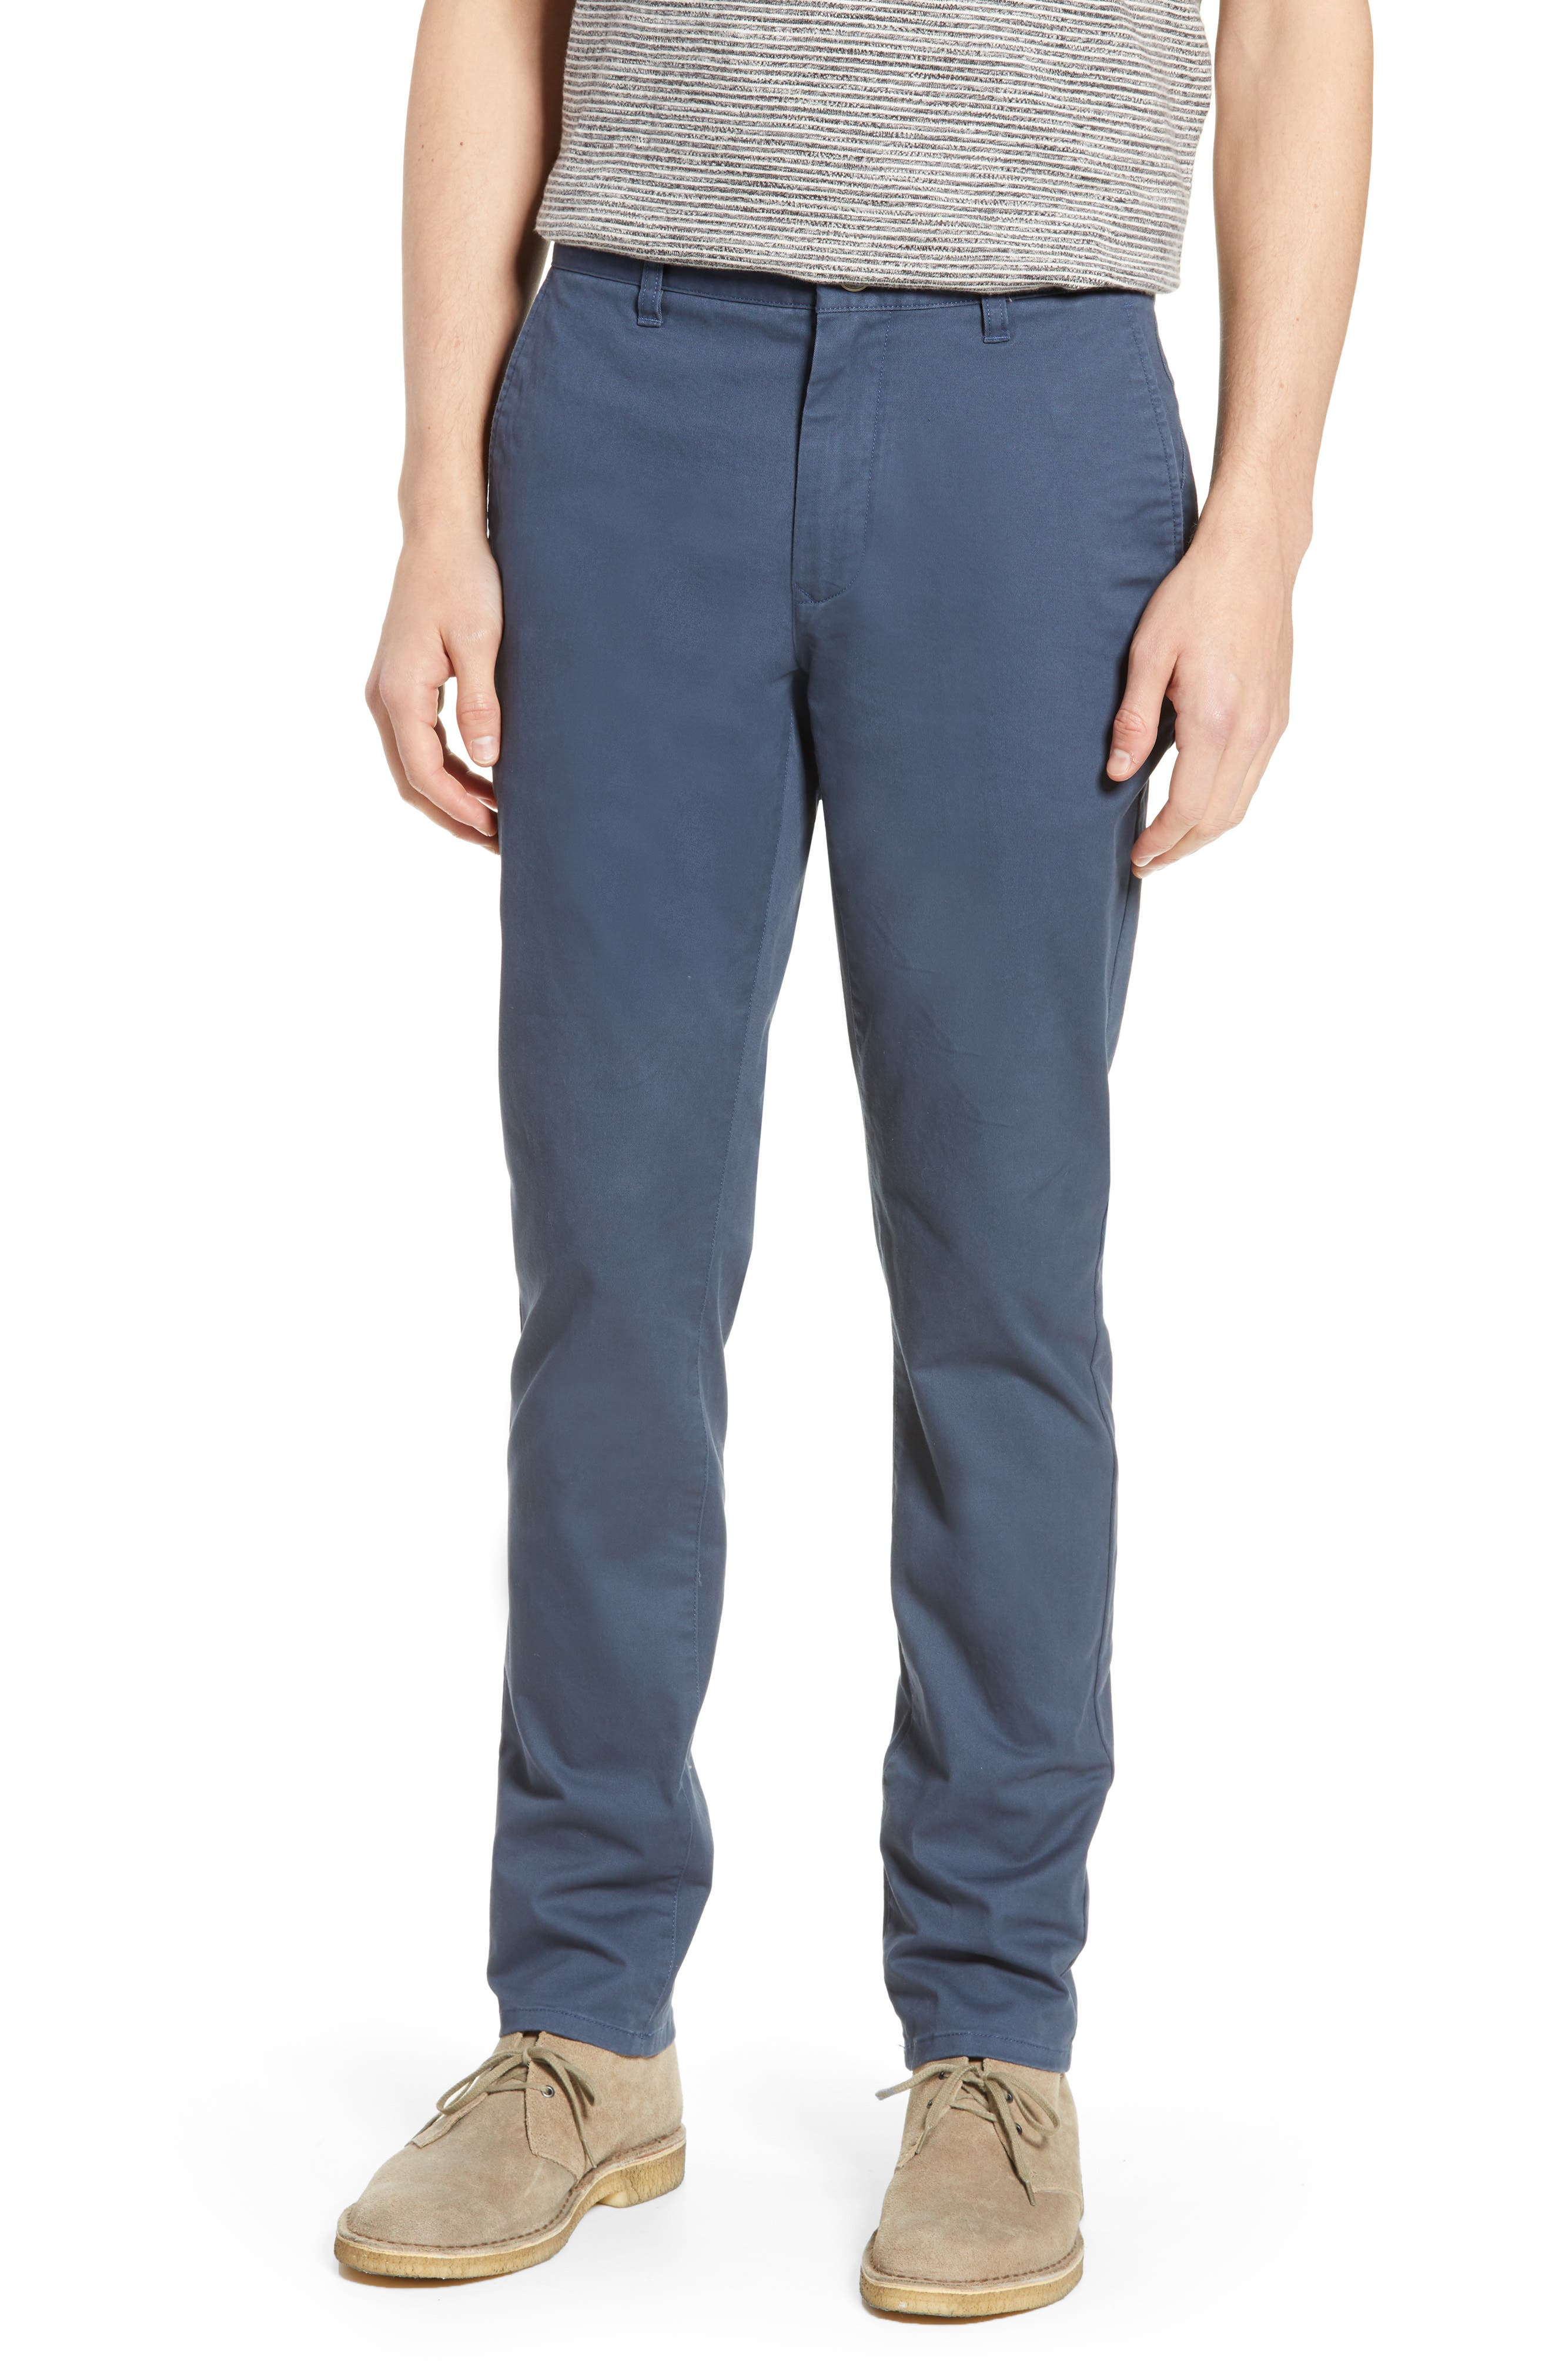 BONOBOS,                             Tailored Fit Washed Stretch Cotton Chinos,                             Main thumbnail 1, color,                             STEELY